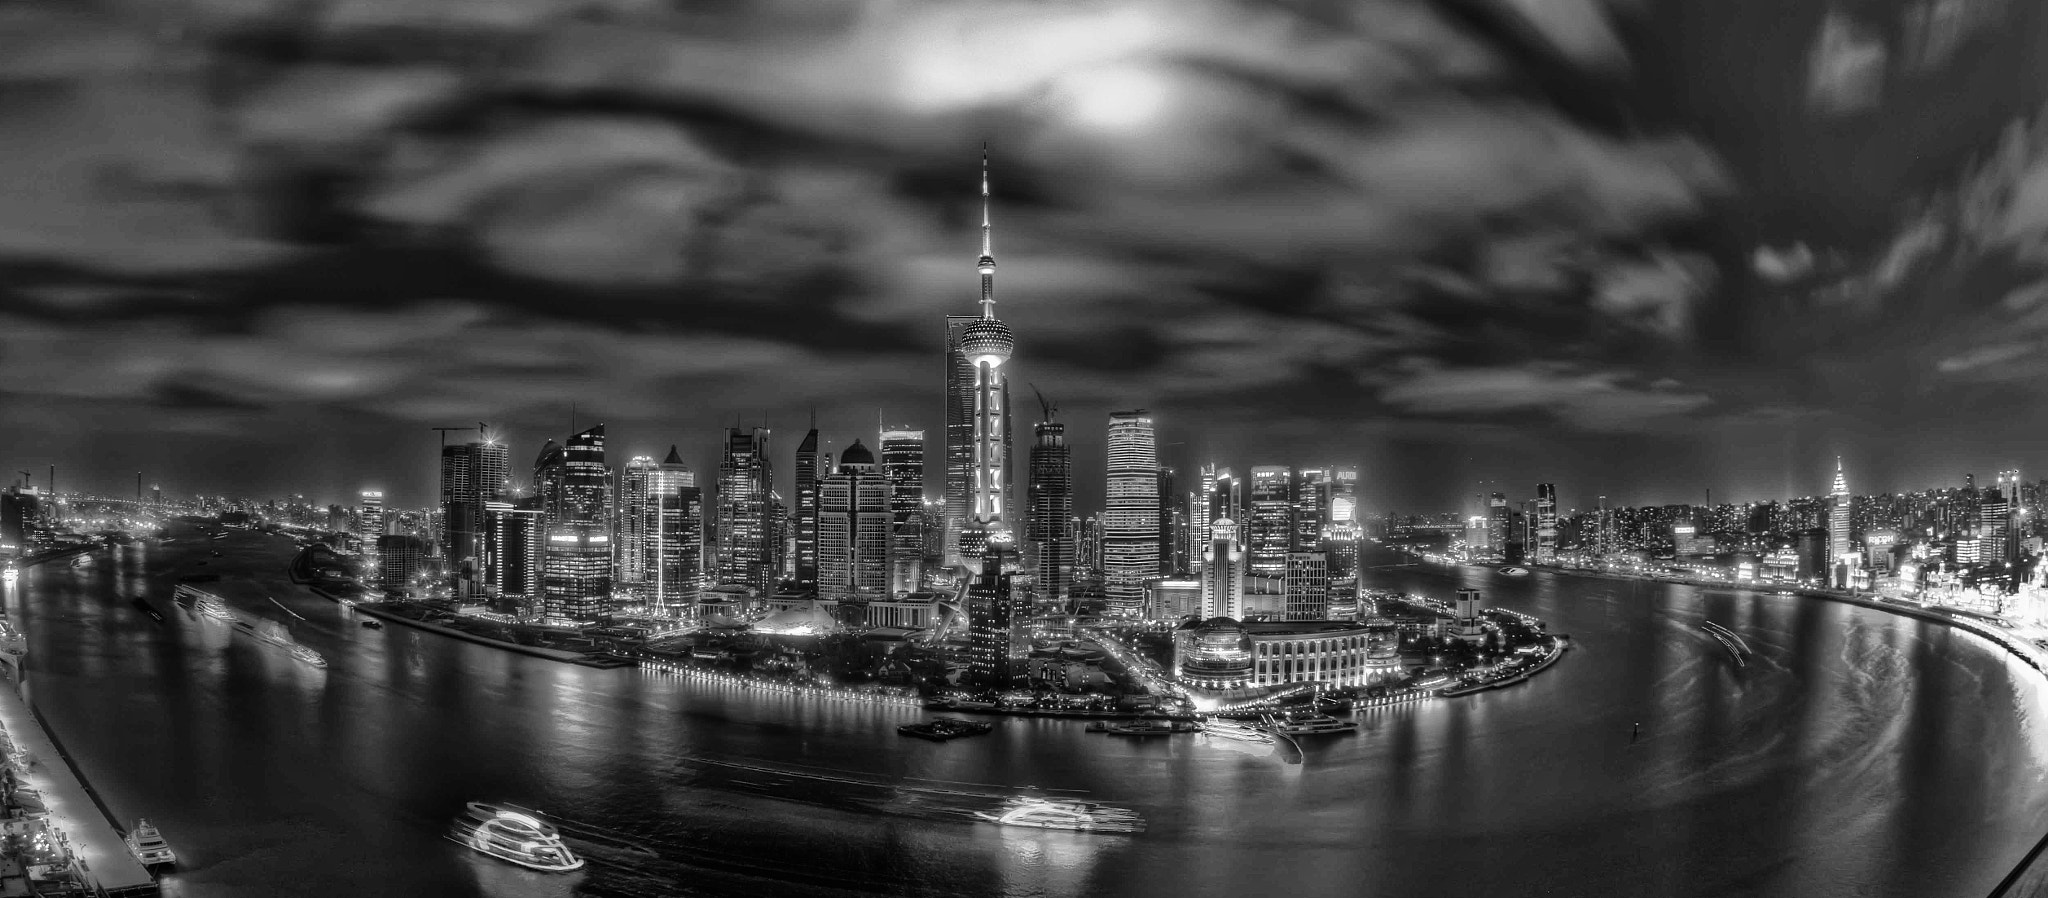 Photograph Pu Dong skyline from the Hyatt hotel by Paul Cowell on 500px